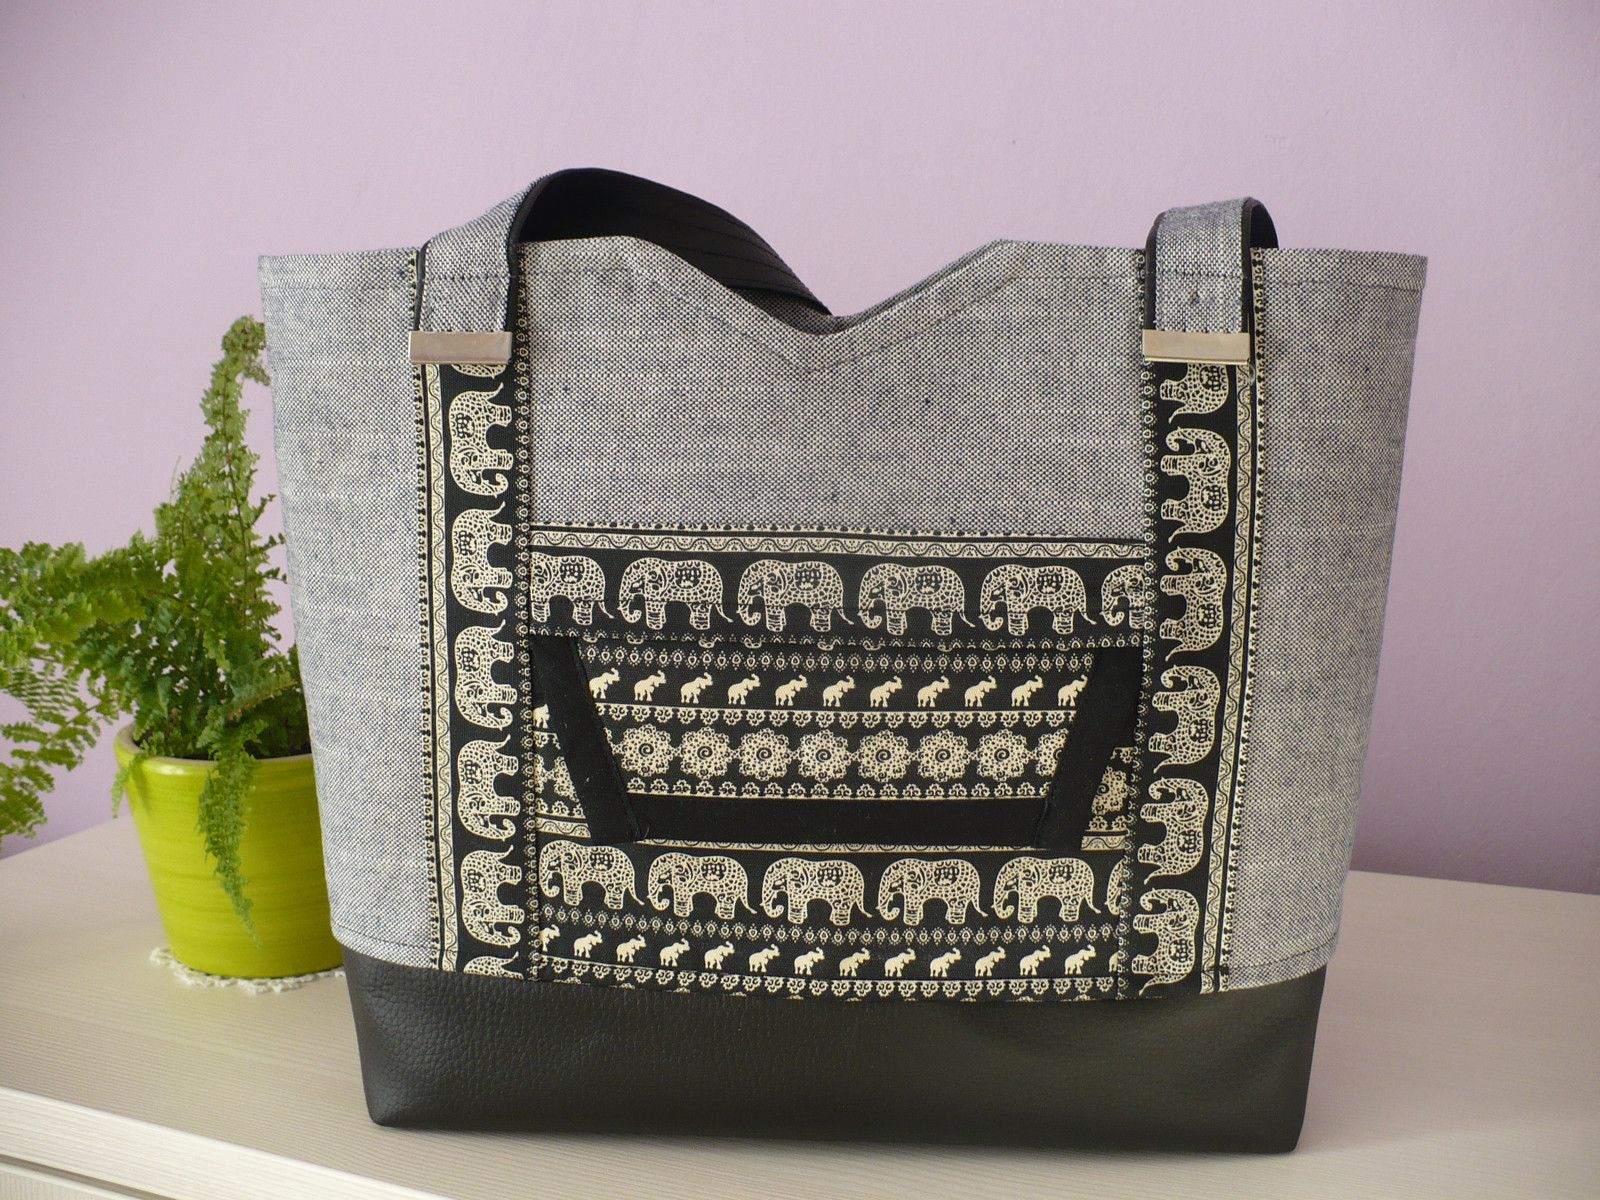 Smaller handbag with elephant pattern